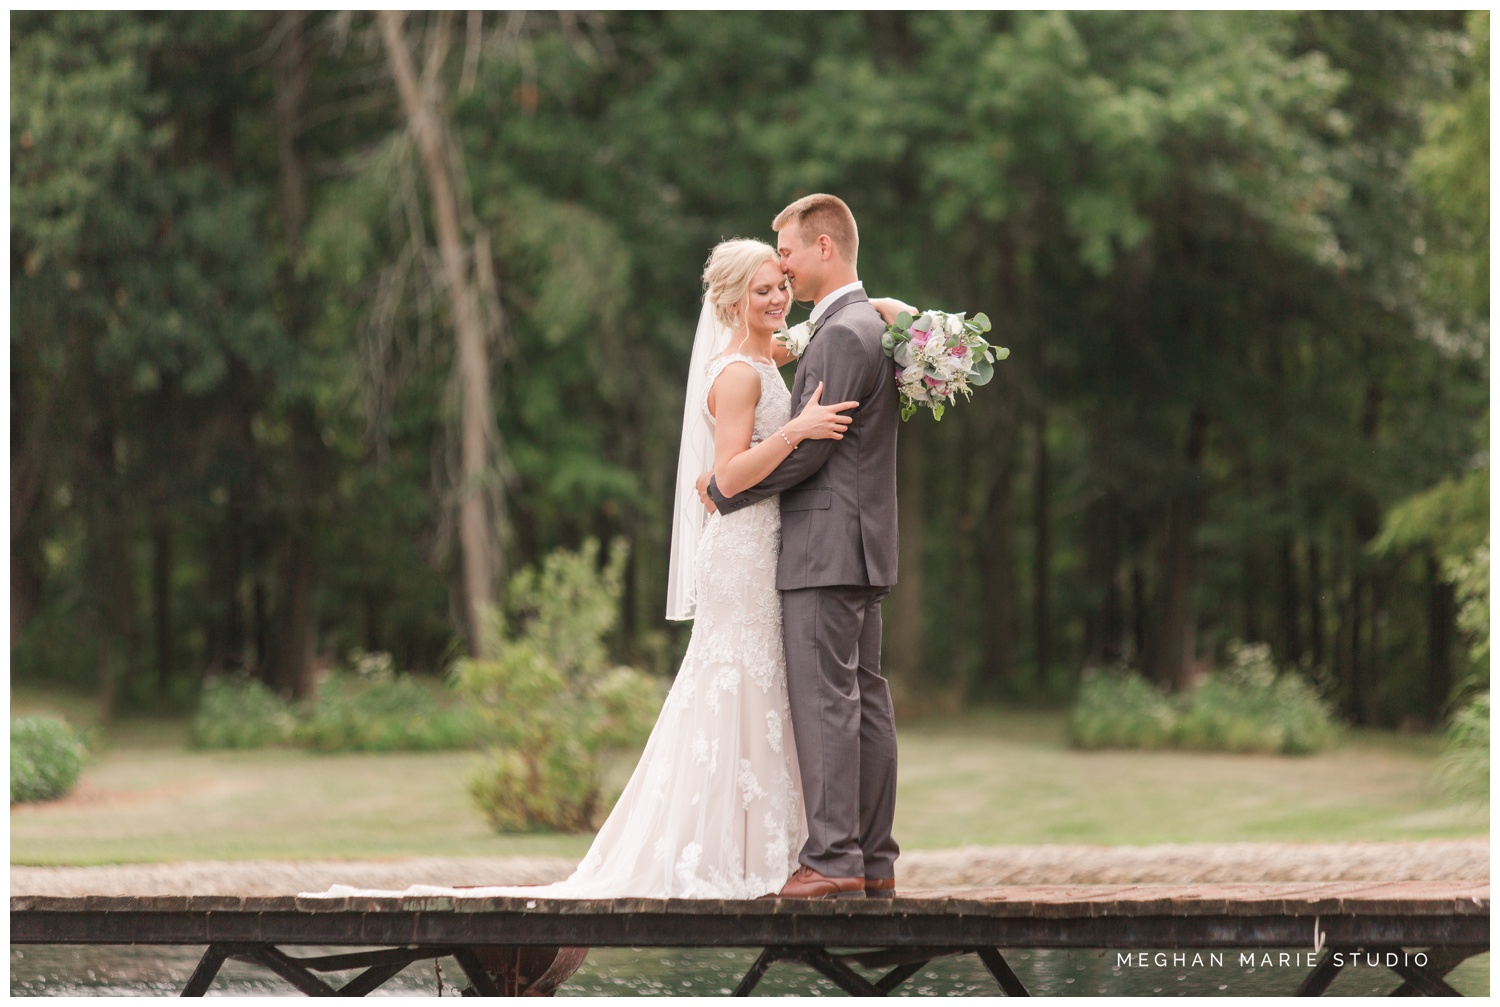 meghan marie studio wedding photographer ohio troy dayton columbus small town rustic rural farm cows vintage mauves dusty rose pinks whites ivorys grays f1 sound paper lanterns pearls_0636.jpg